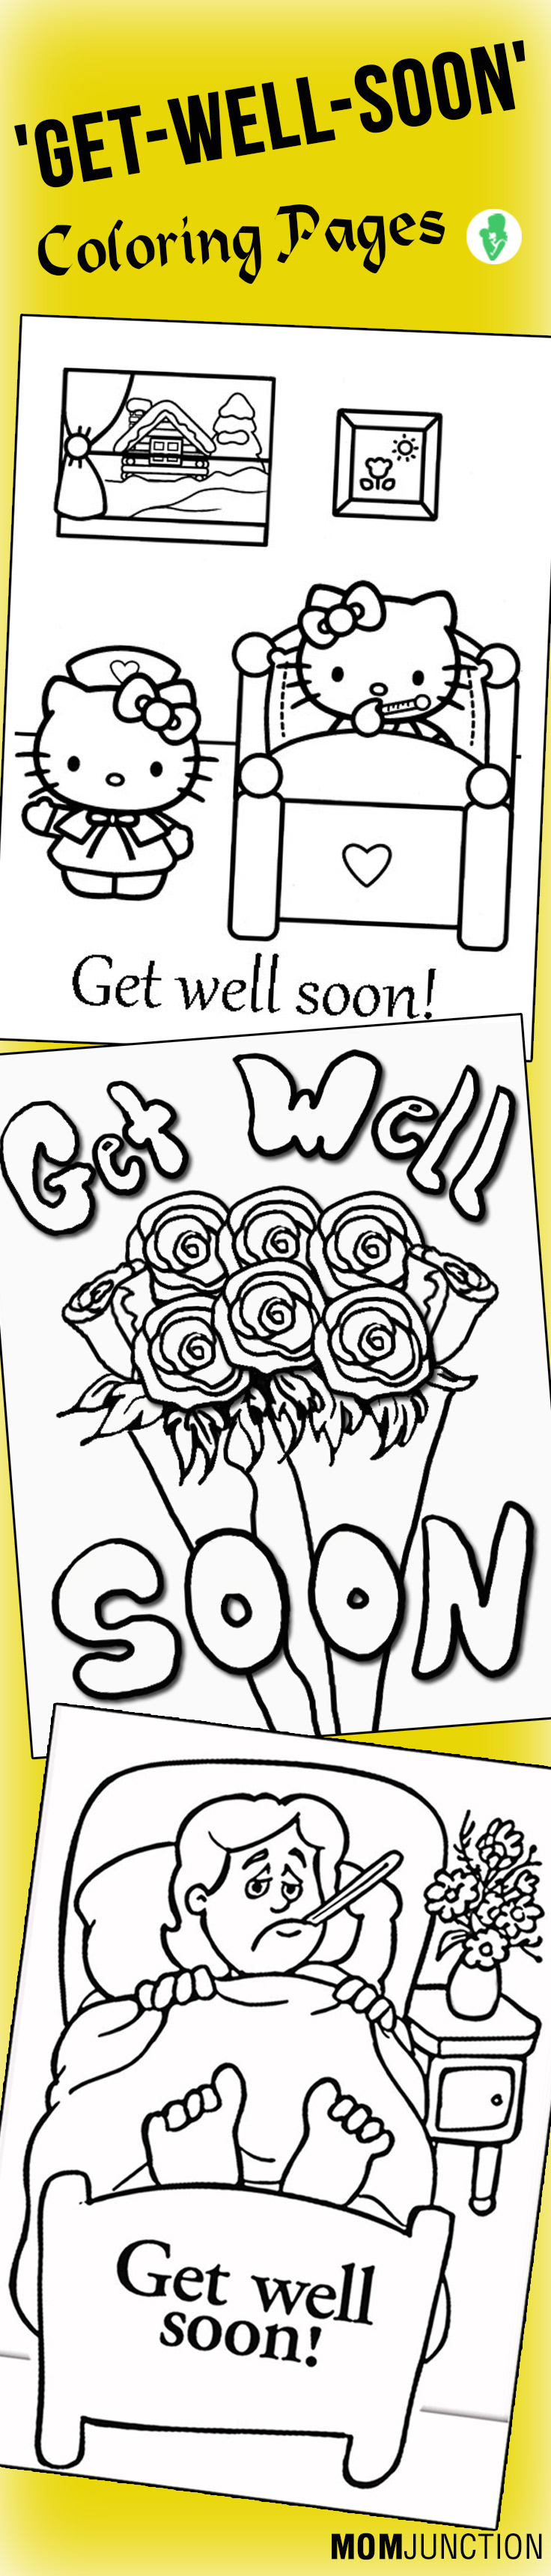 Free coloring pages hospital - Top 25 Free Printable Get Well Soon Coloring Pages Online